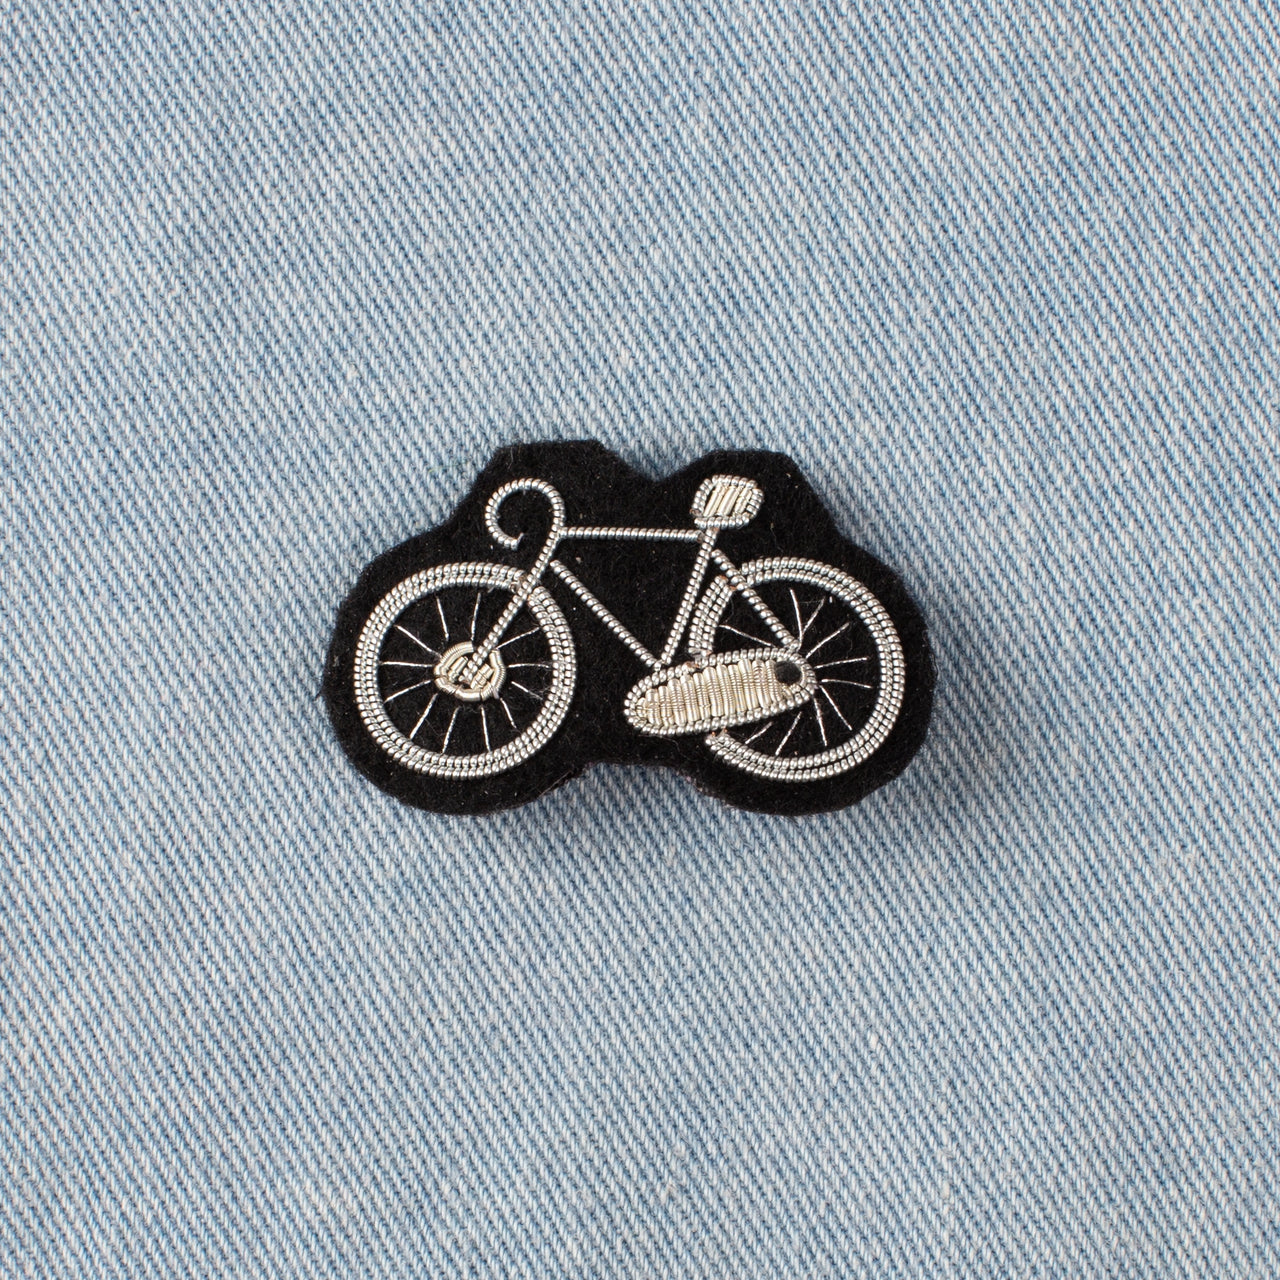 Embroidered Pin - Bike